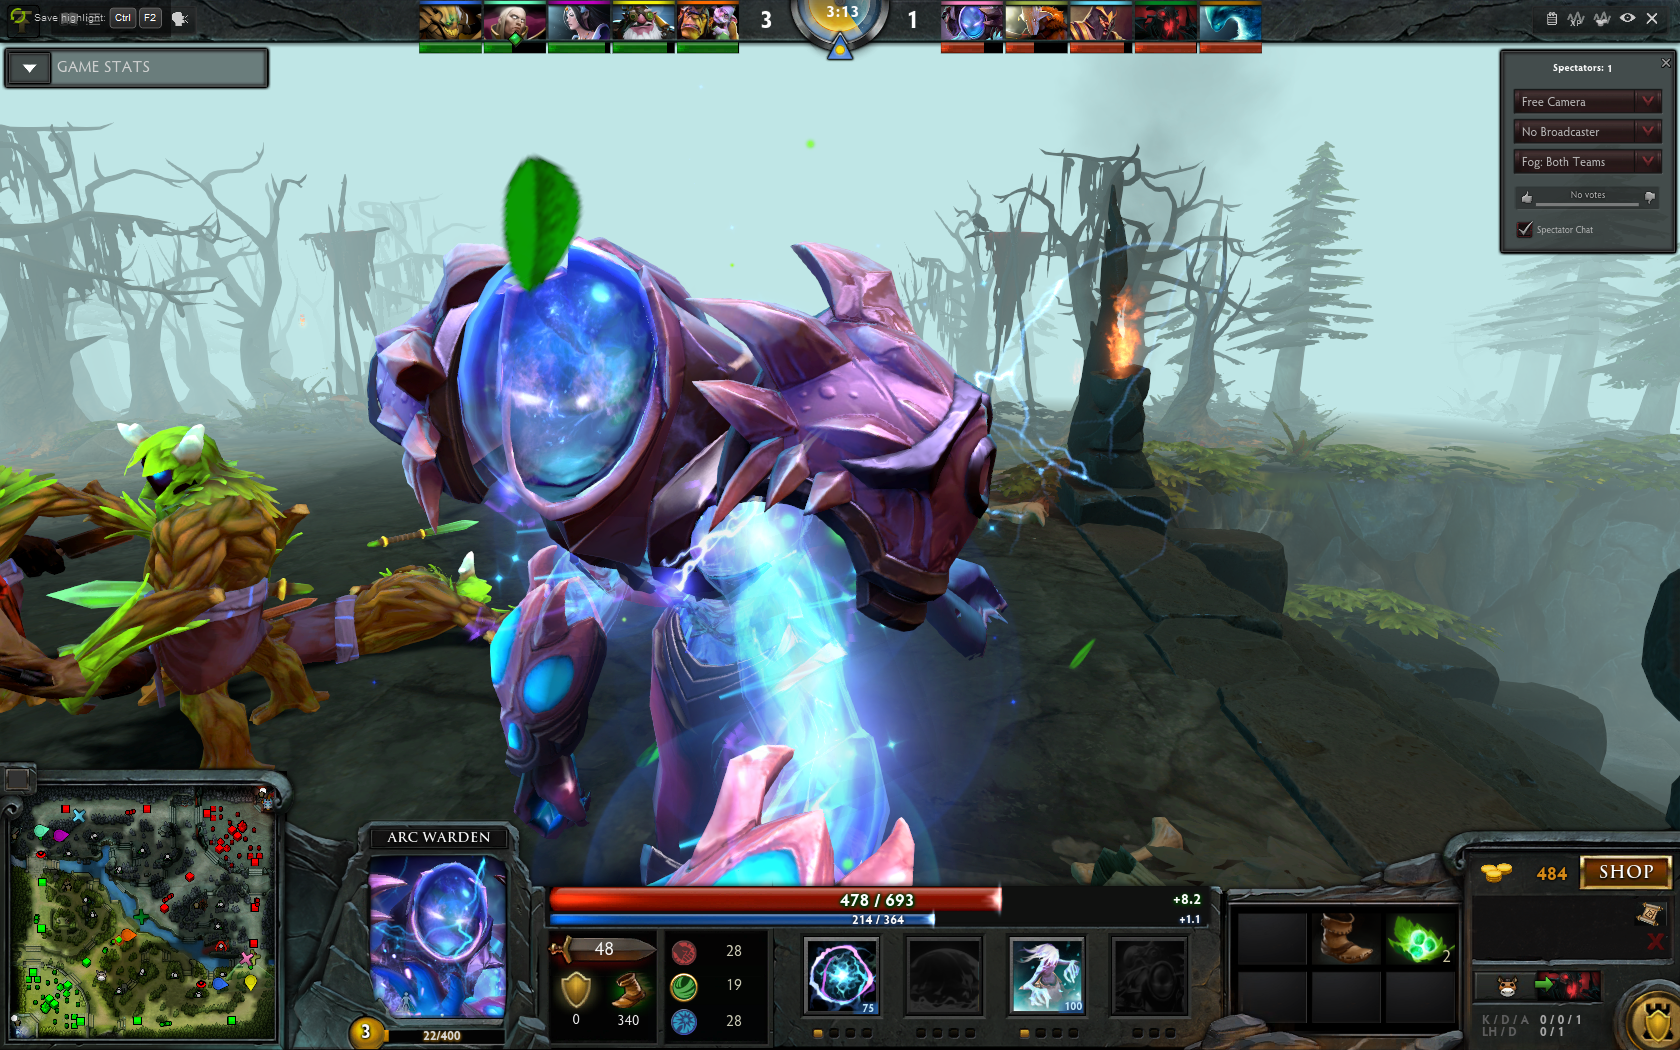 there he is one and only the most powerful hero arc warden